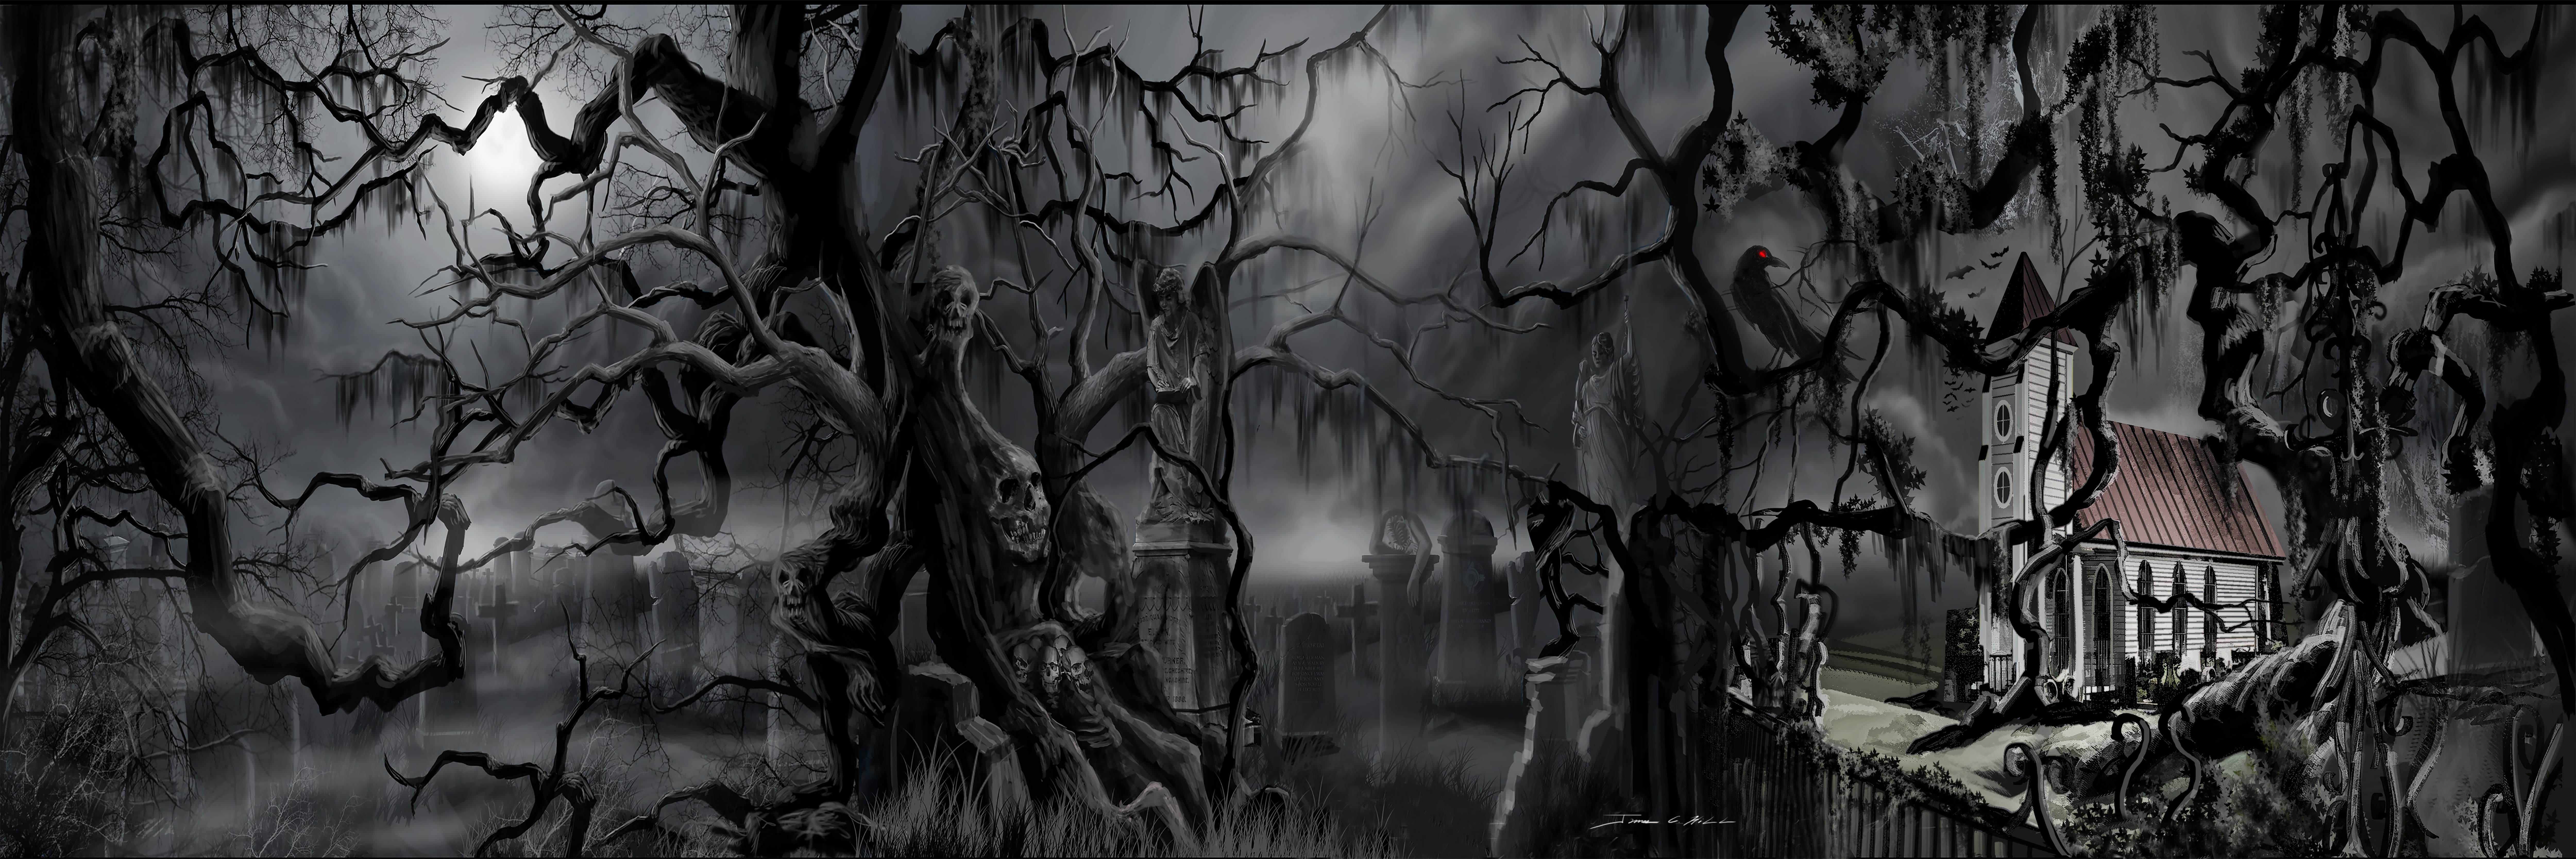 James Hill: 'darkness in the midnight hour', 2020 Digital Painting, Other. Painting of a mysterious cemetery - Classical Horror Style - Vintage Hollywood - Creepy, Eerie, Haunted, Supernatural...